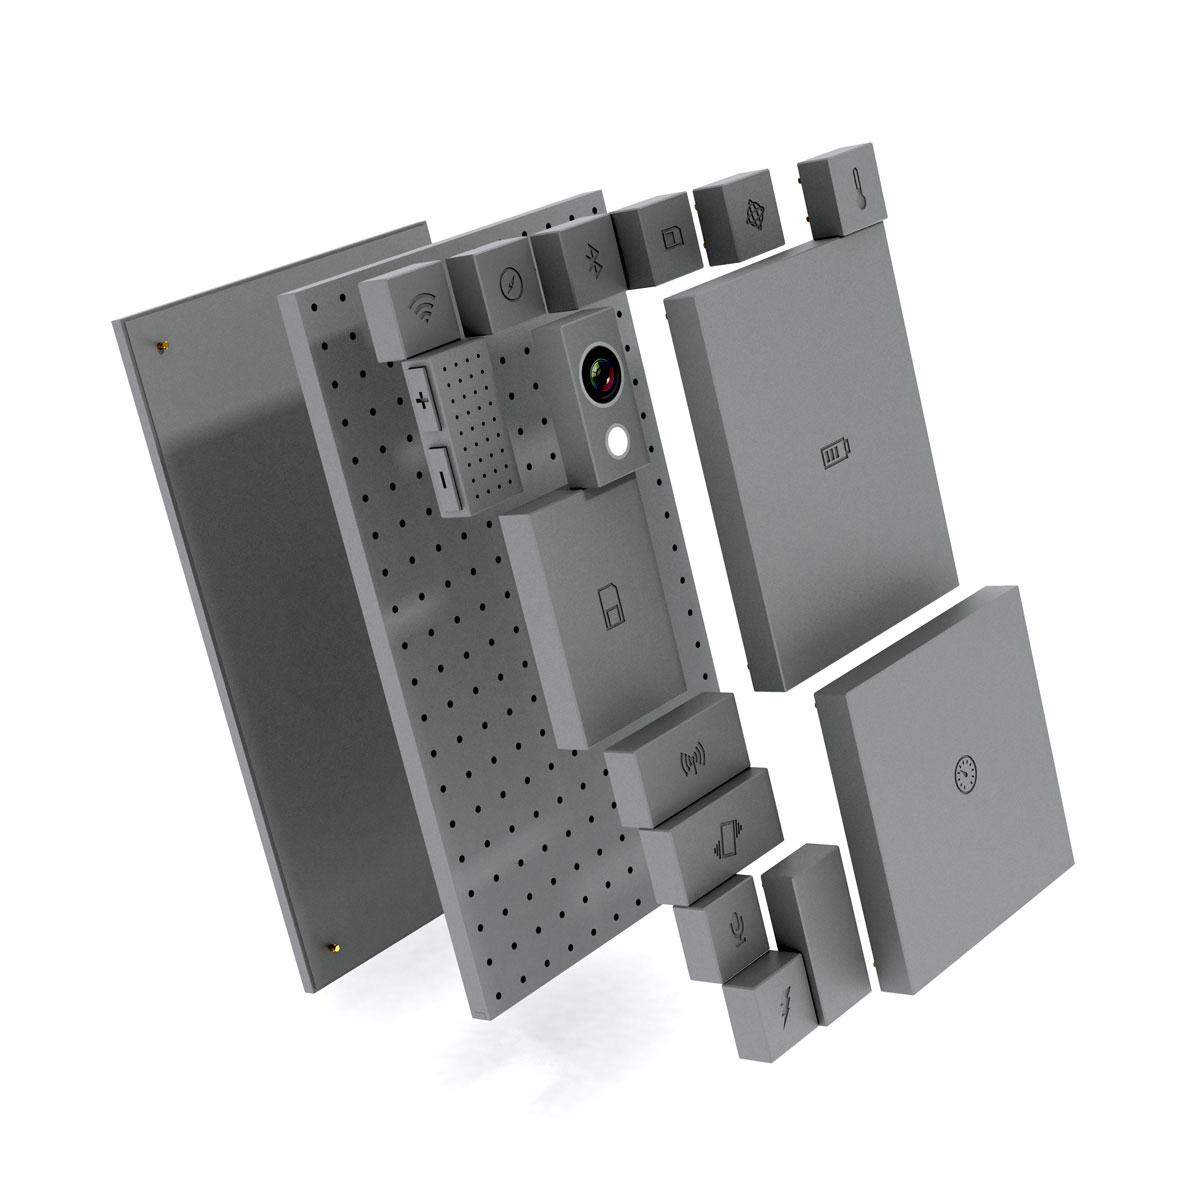 http://news.phonebloks.com/